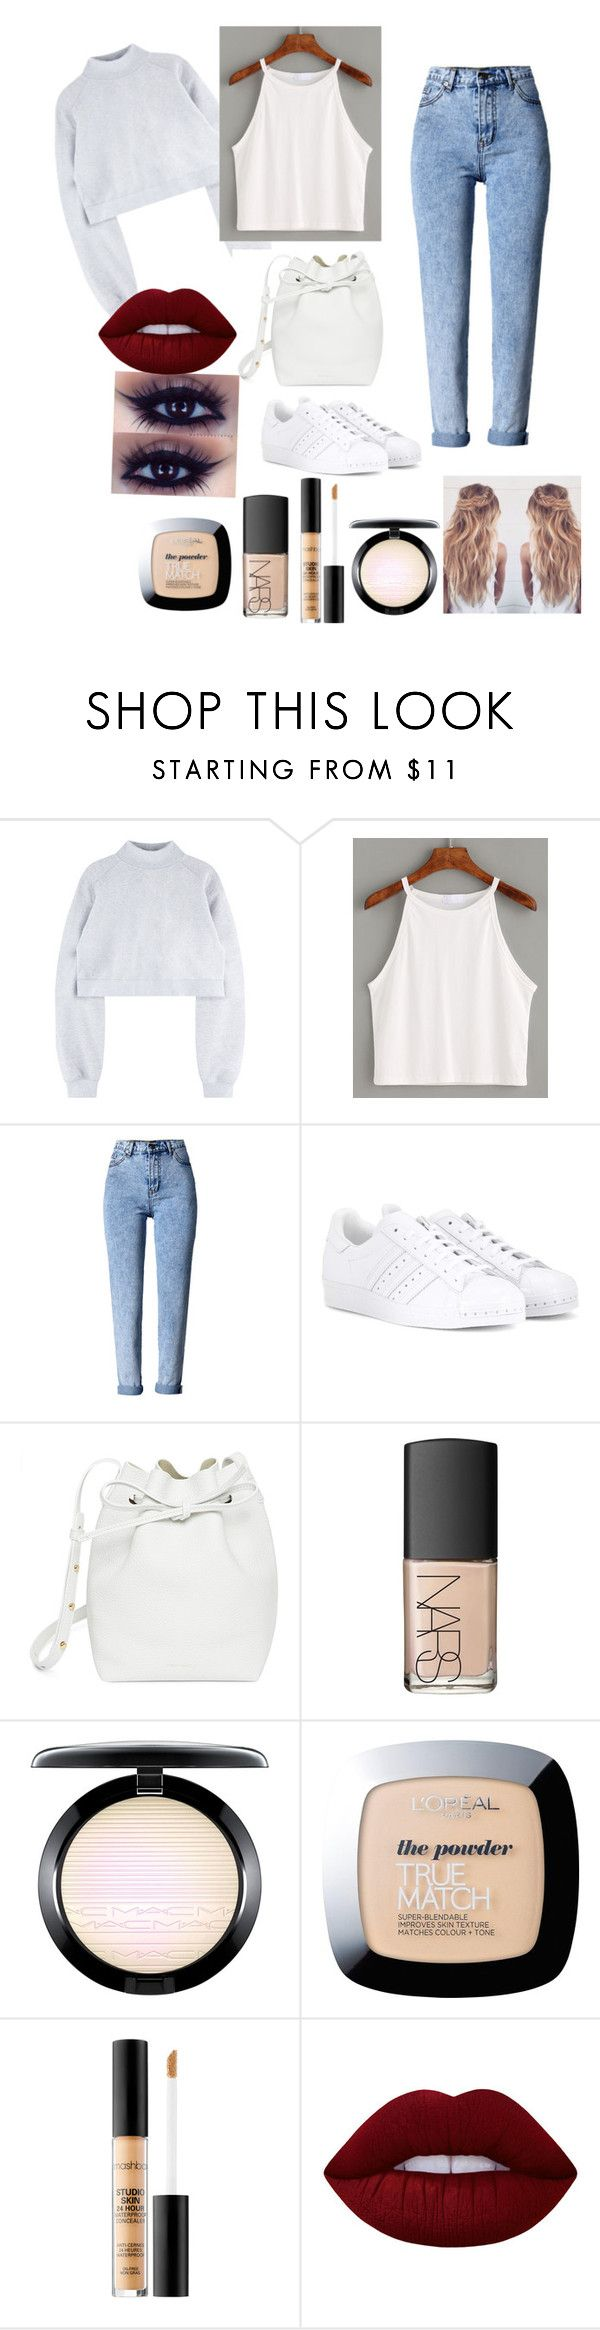 """Lazy day"" by caiaia ❤ liked on Polyvore featuring WithChic, adidas, Mansur Gavriel, NARS Cosmetics, MAC Cosmetics, L'Oréal Paris, Smashbox, Lime Crime and lazy"